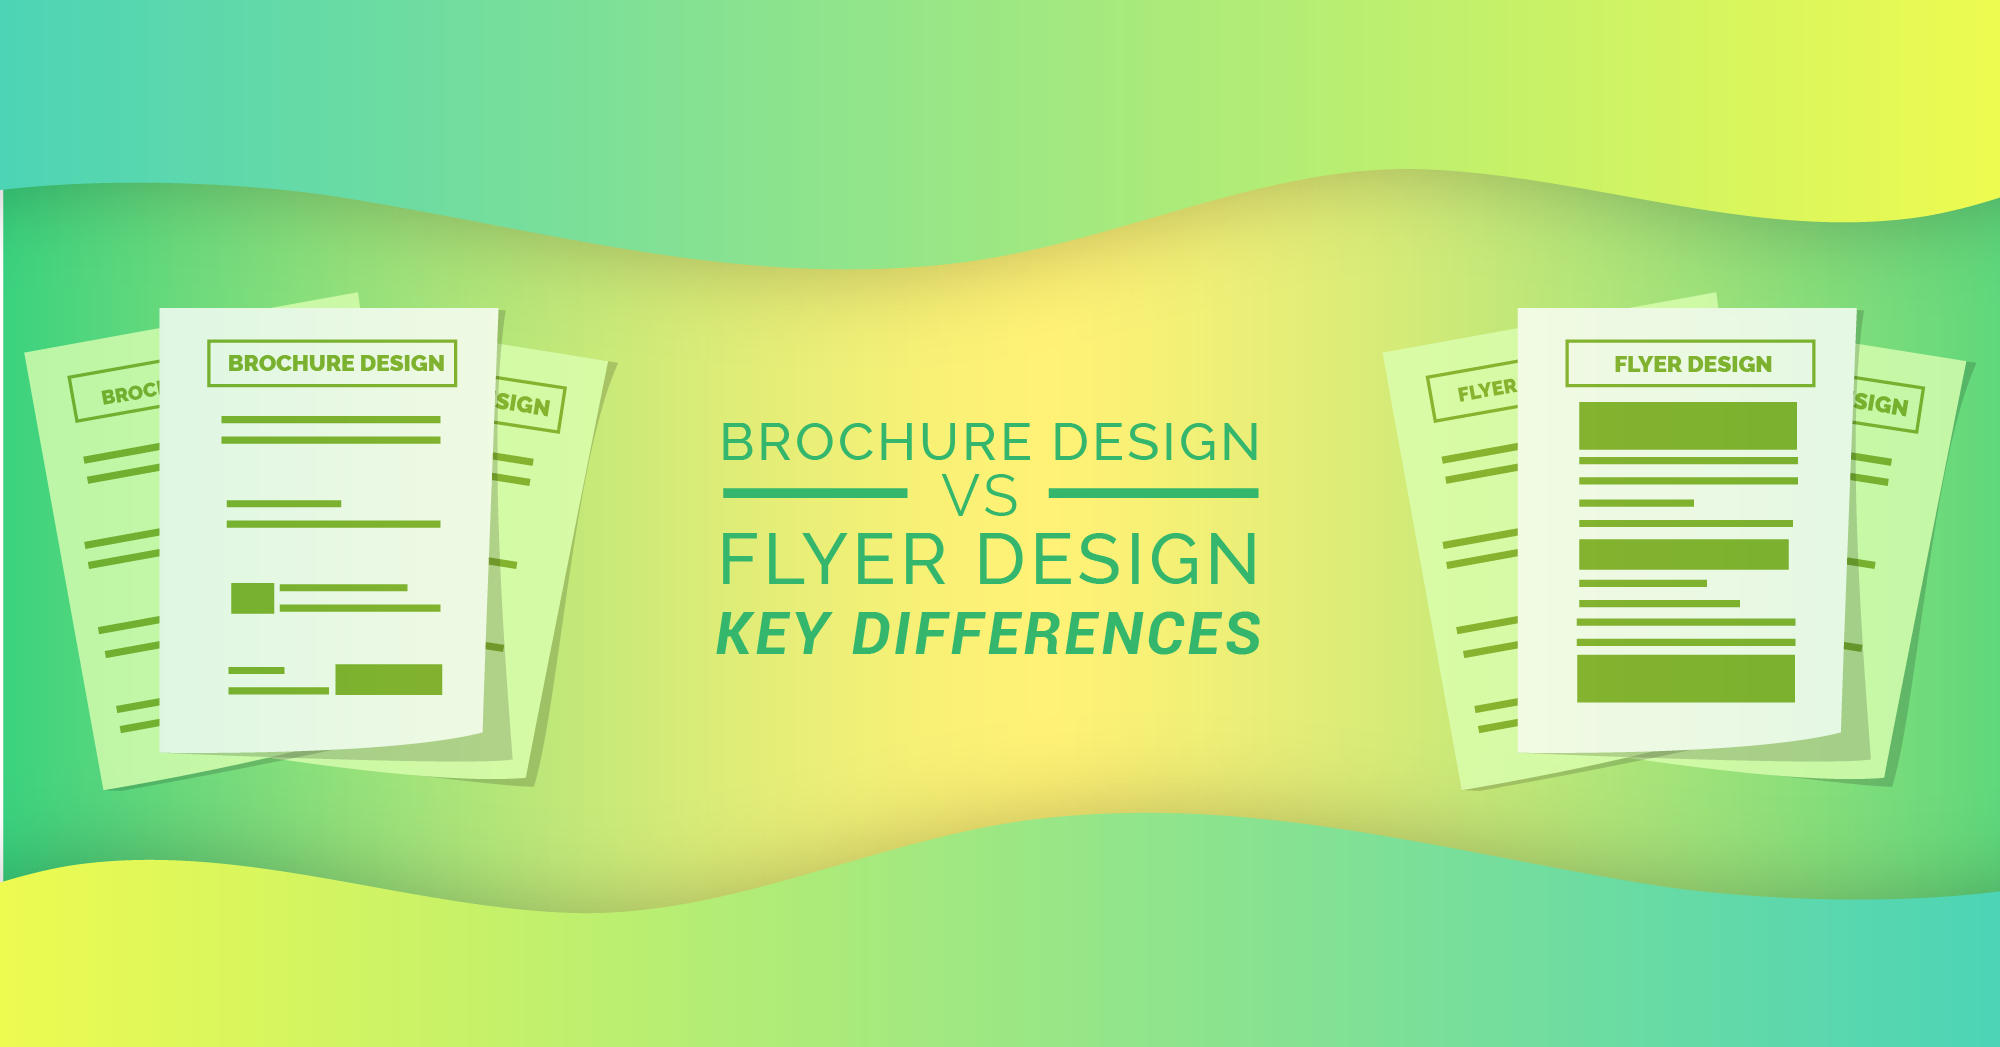 Brochure Design vs Flyer Design - Key Differences